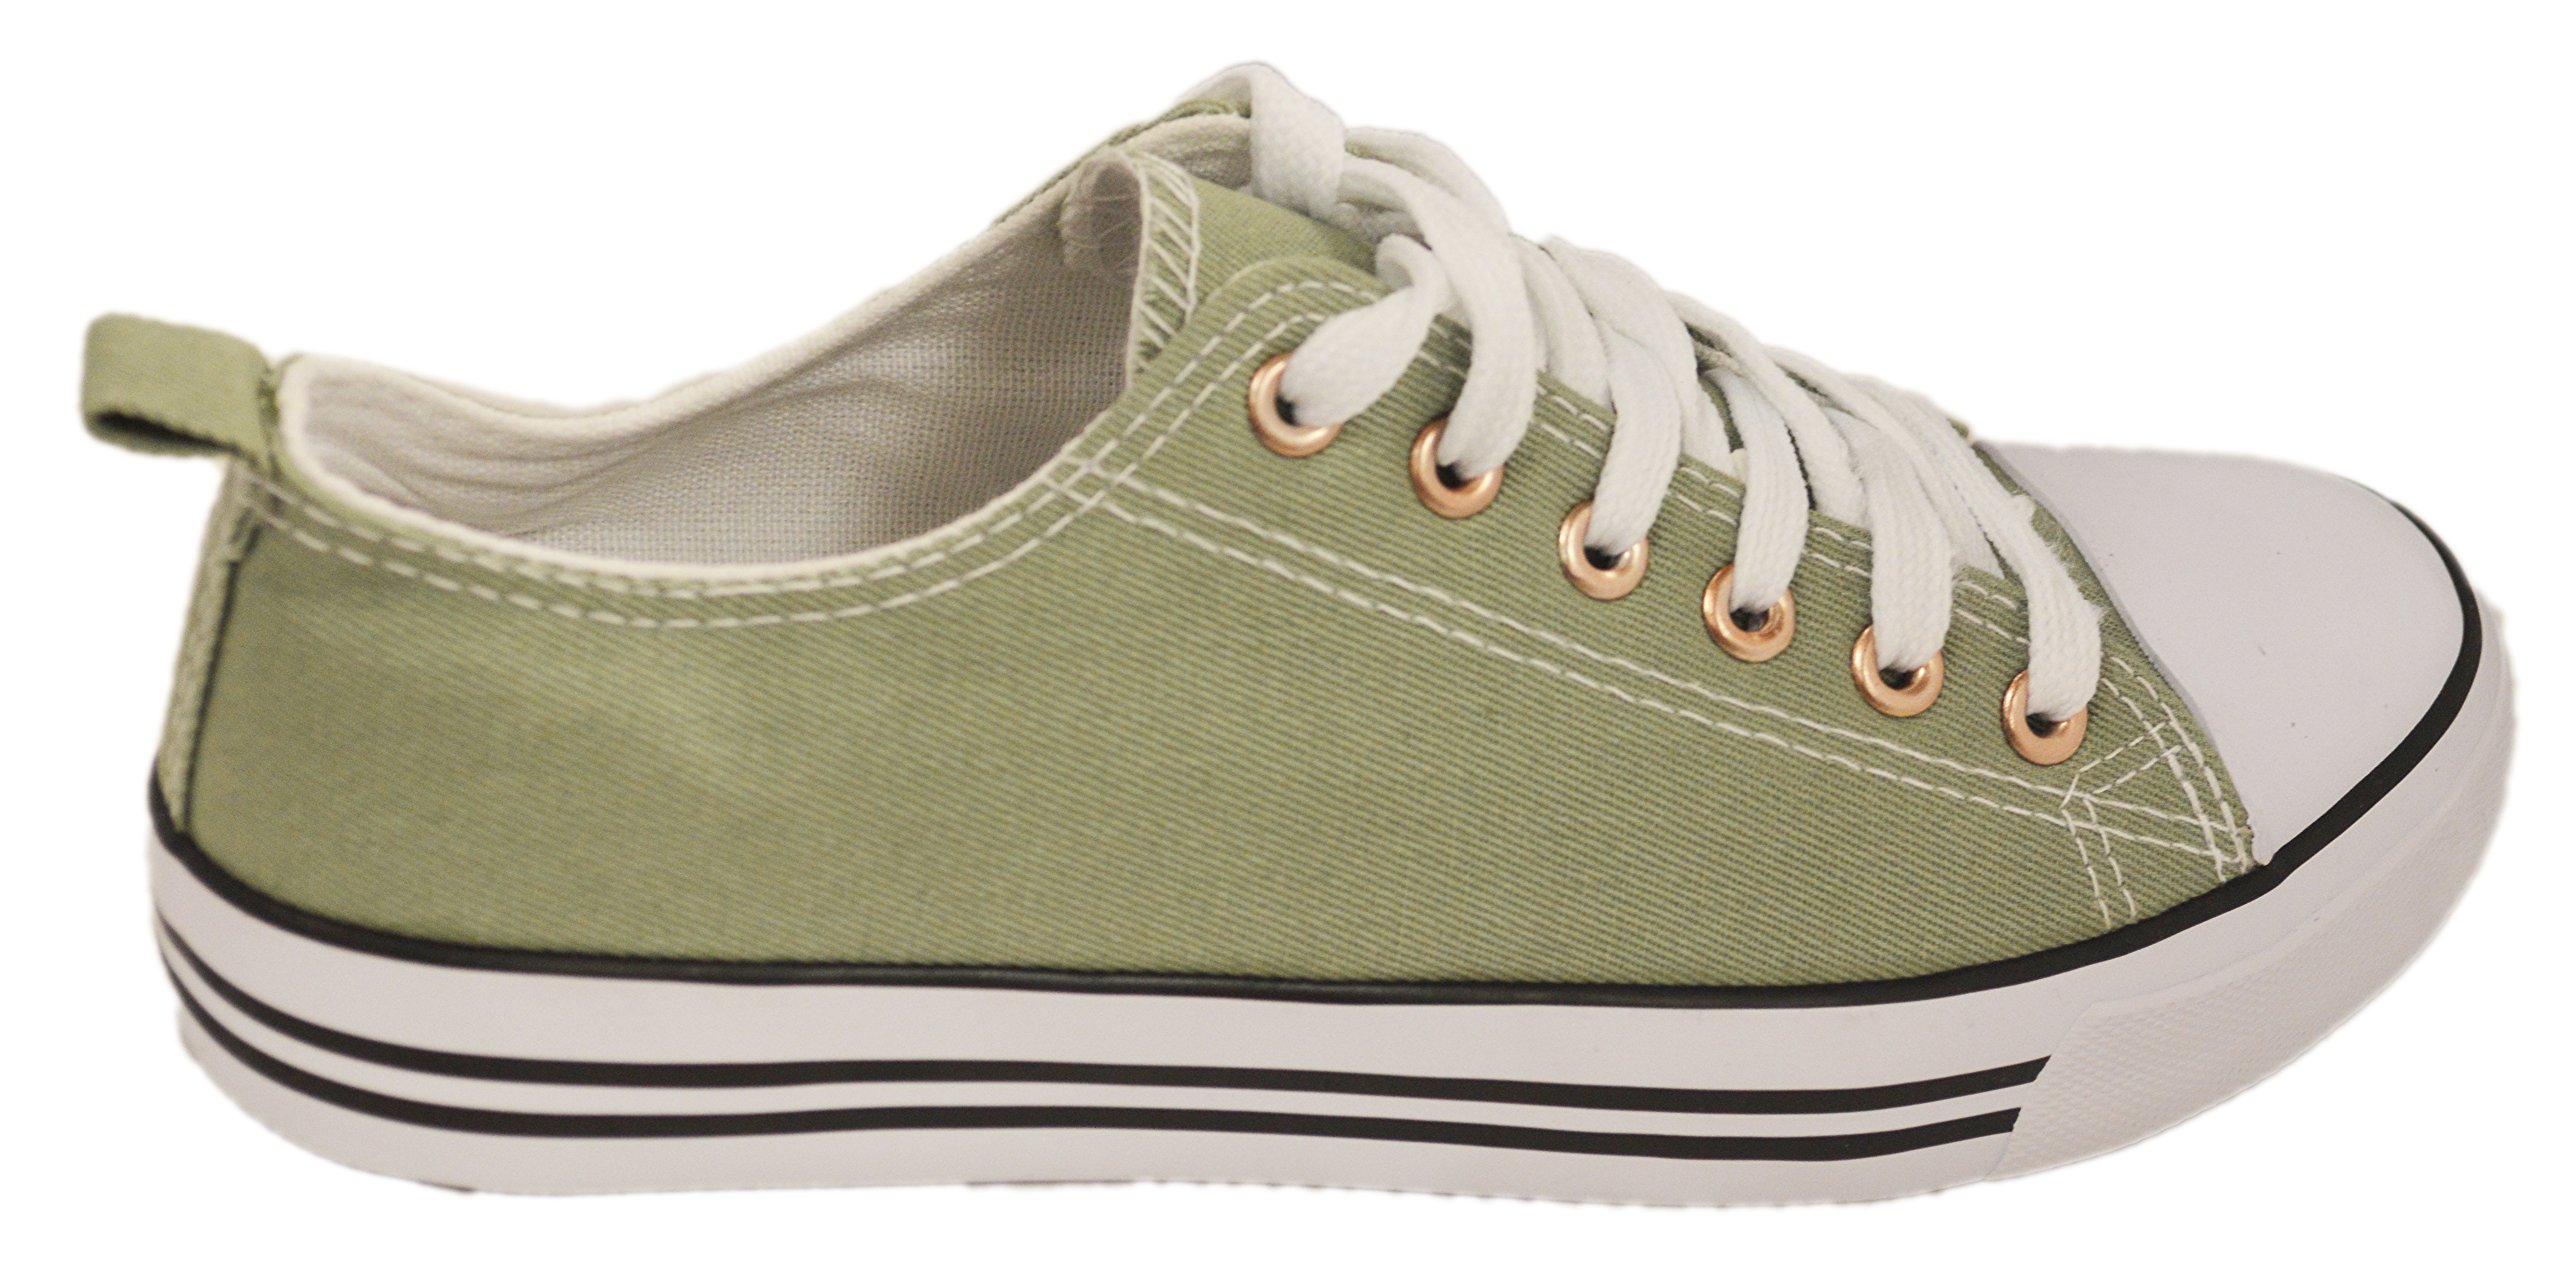 Haughty Canvas Shoes for Women Fashion Walking Shoes Ladies Sneaker Low Top HaughtyMWC-Light Olive-6